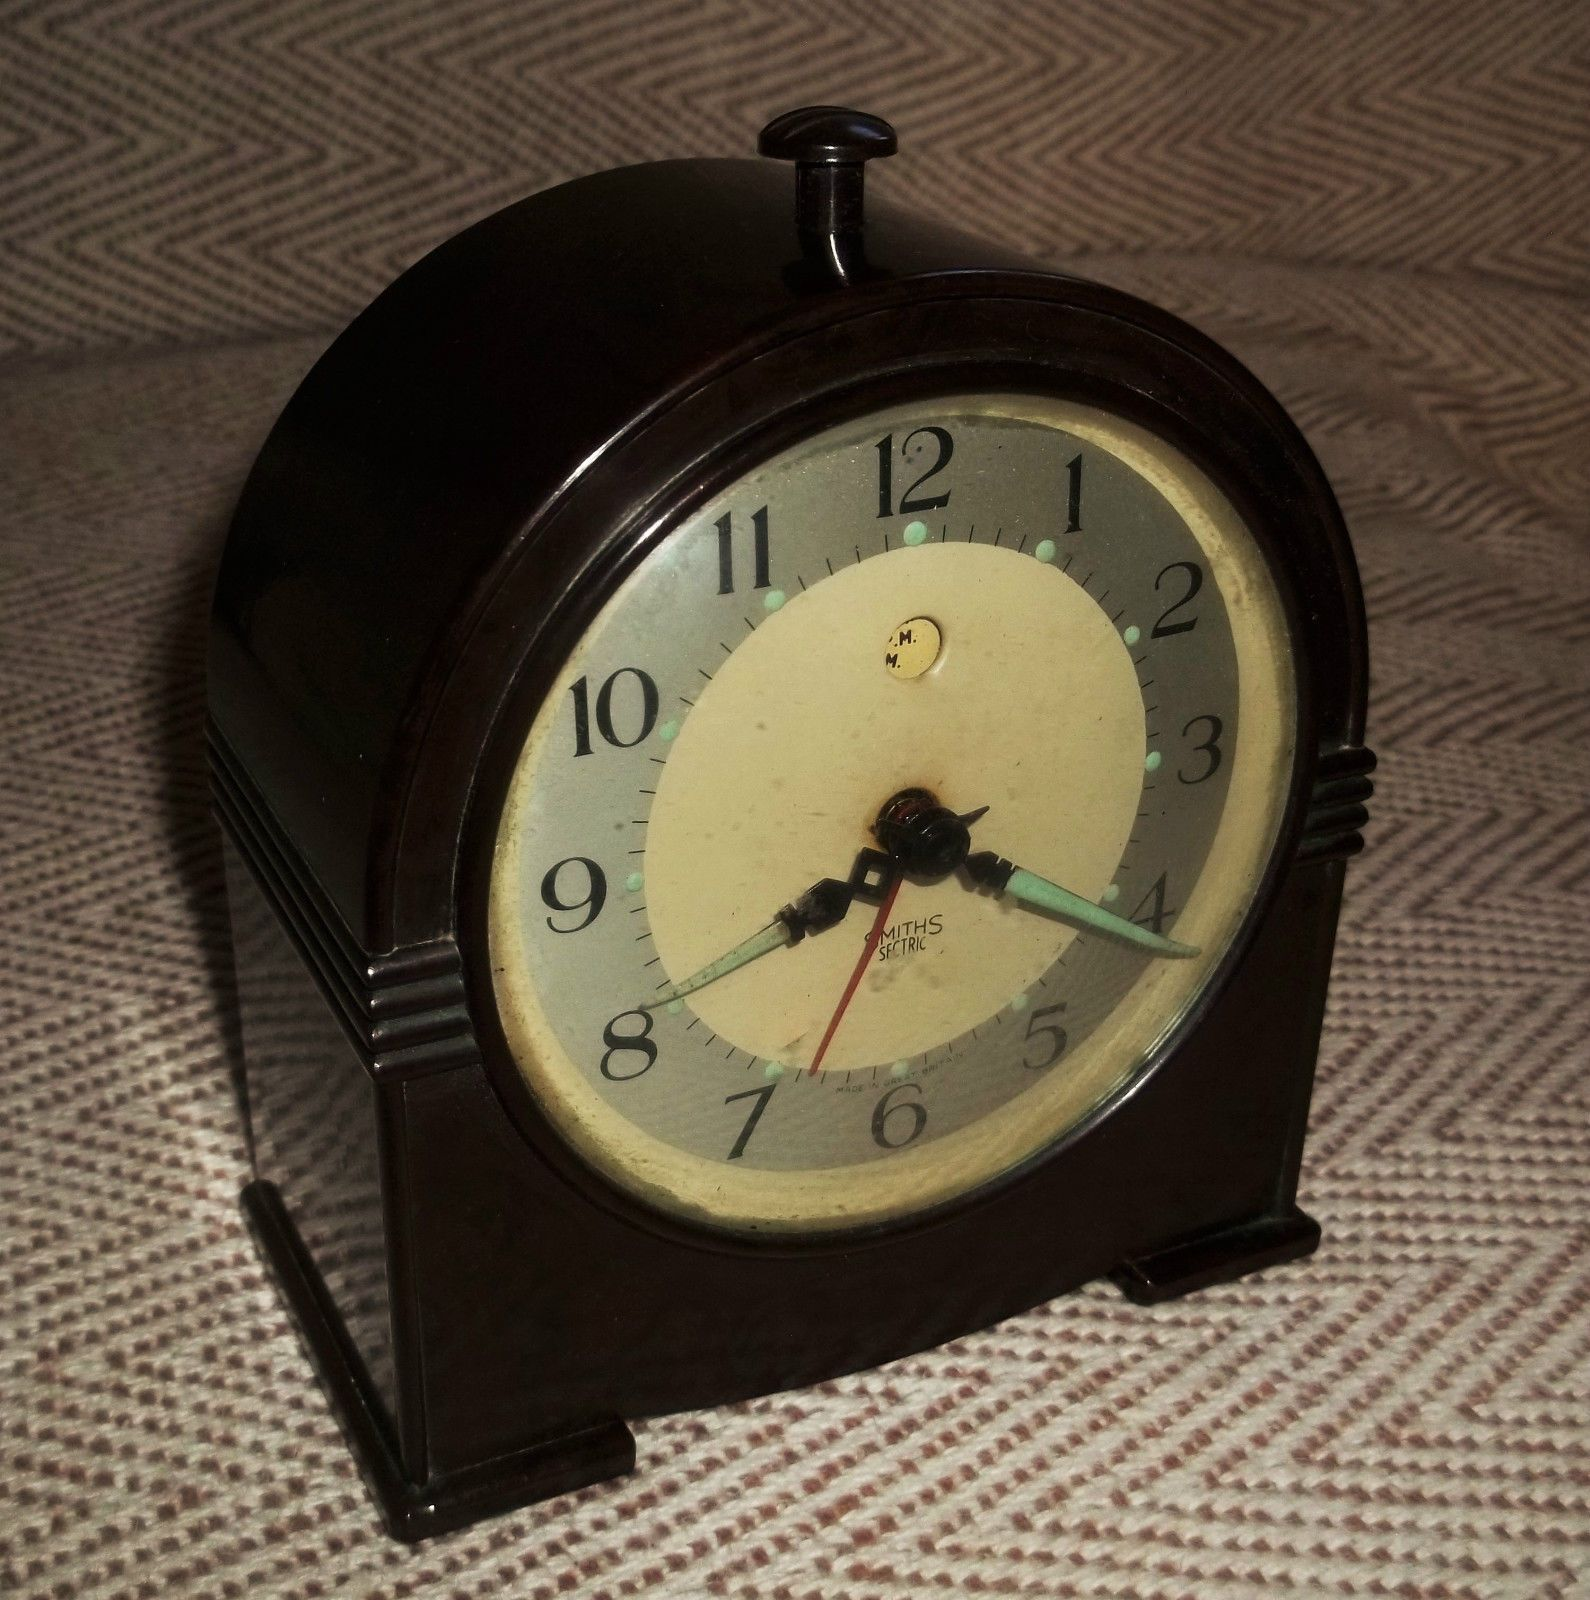 Delightful 1930 S Art Deco Smiths Sectric Electric Bakelite Alarm Clock Clock 1930s Art Deco Vintage Clock